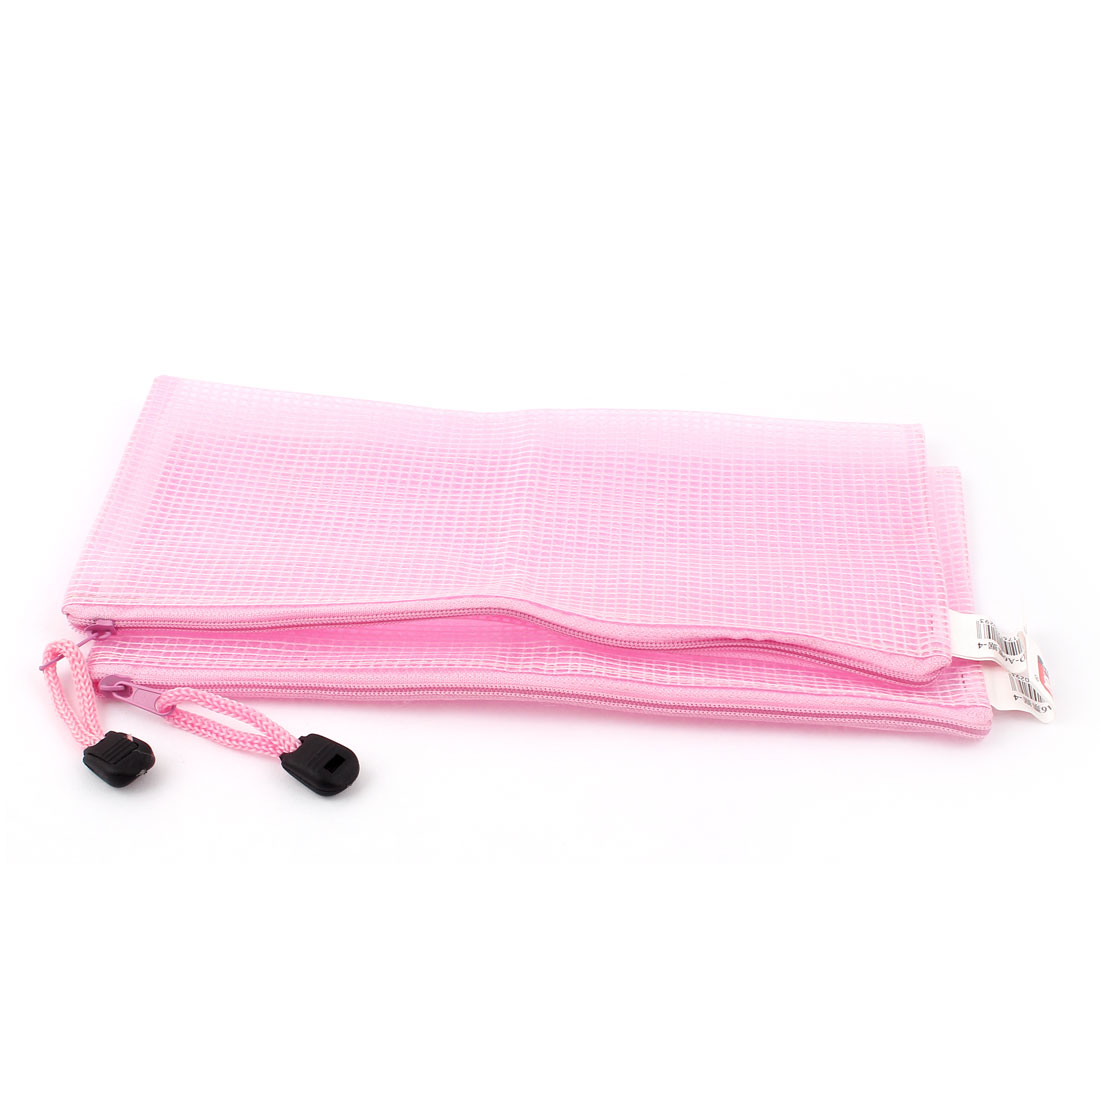 Zippered PVC Mesh A6 Paper Document File Storage Bag Holder Pouch Pink 2pcs